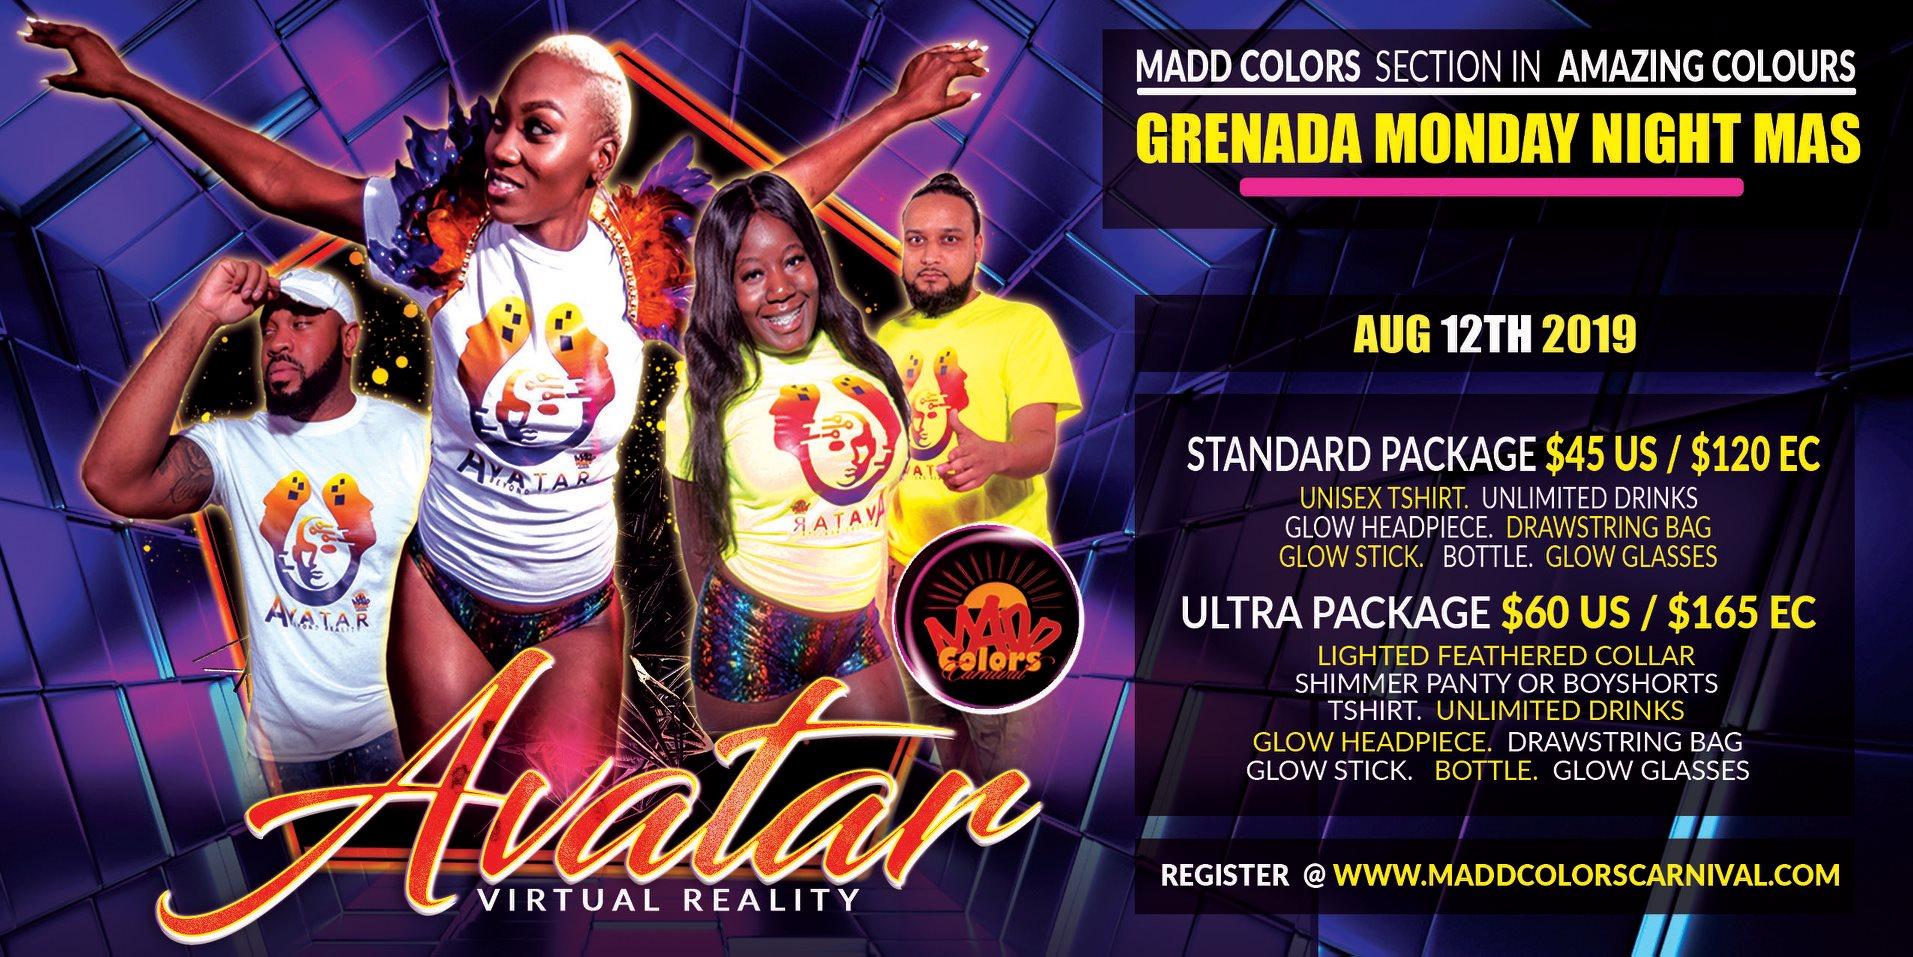 monday night mas Grenada 2019